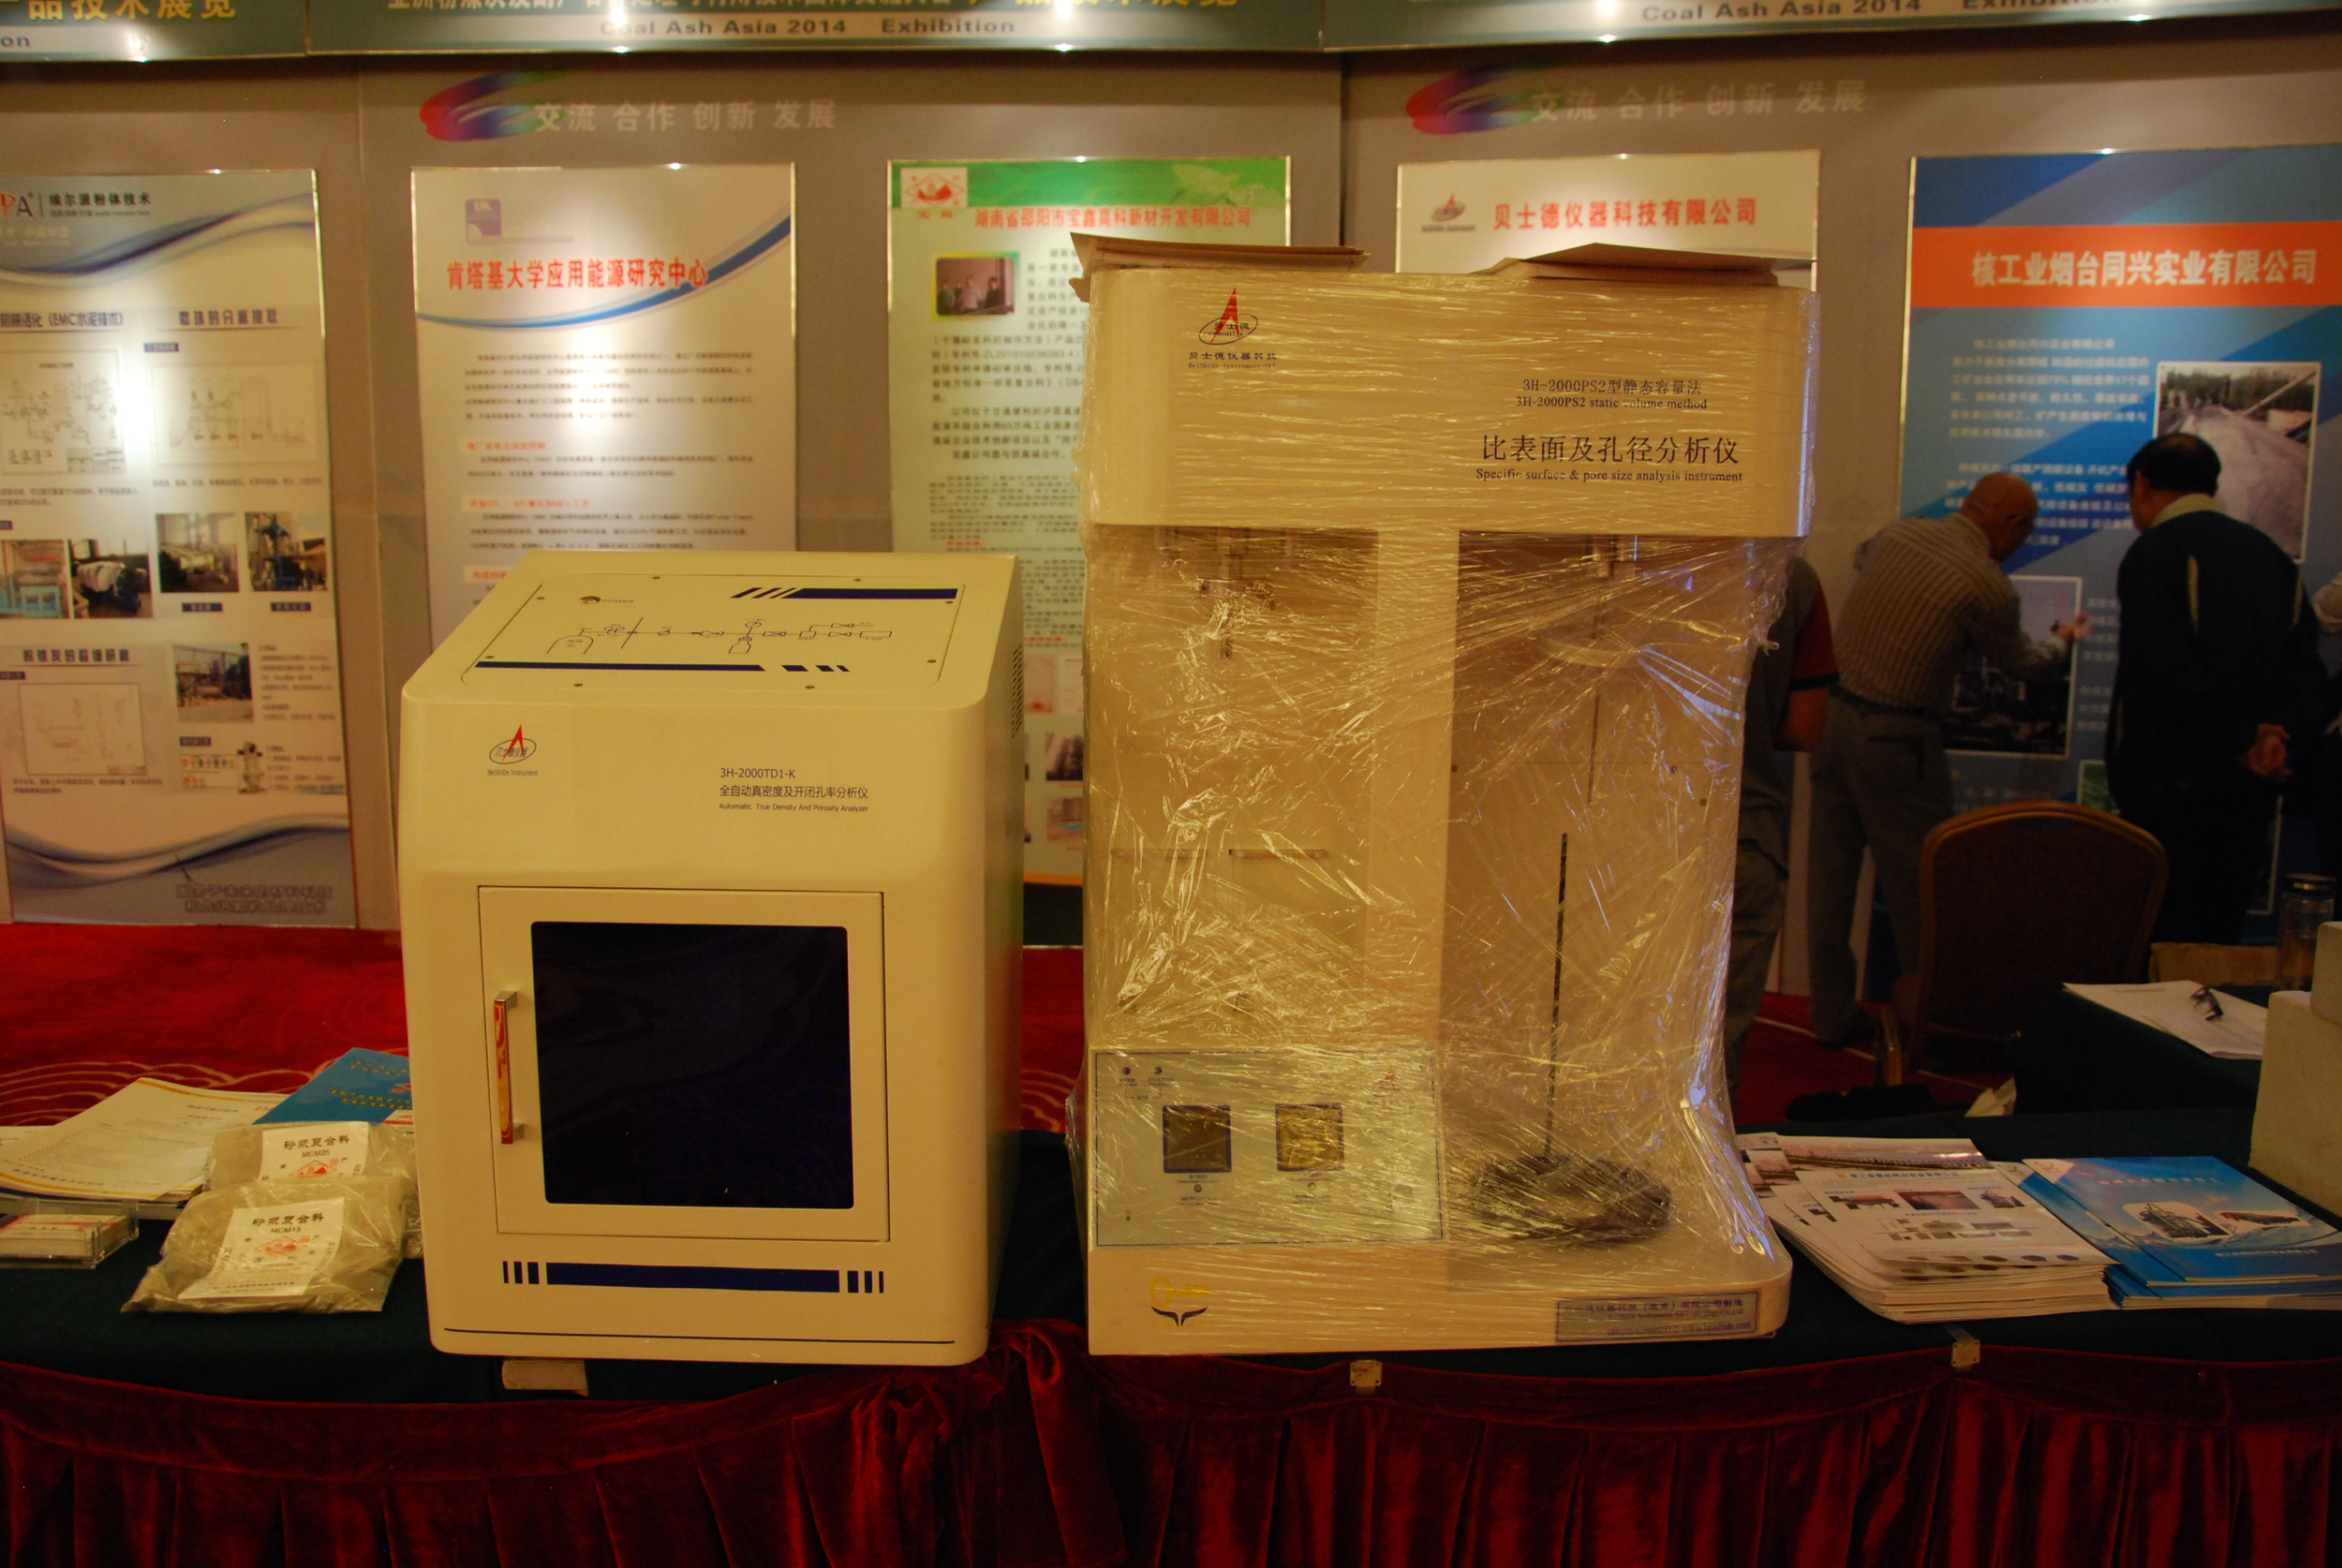 Building materials, other products and equipment technologies were on display in the exhibition hall at Coal Ash Asia 2014.